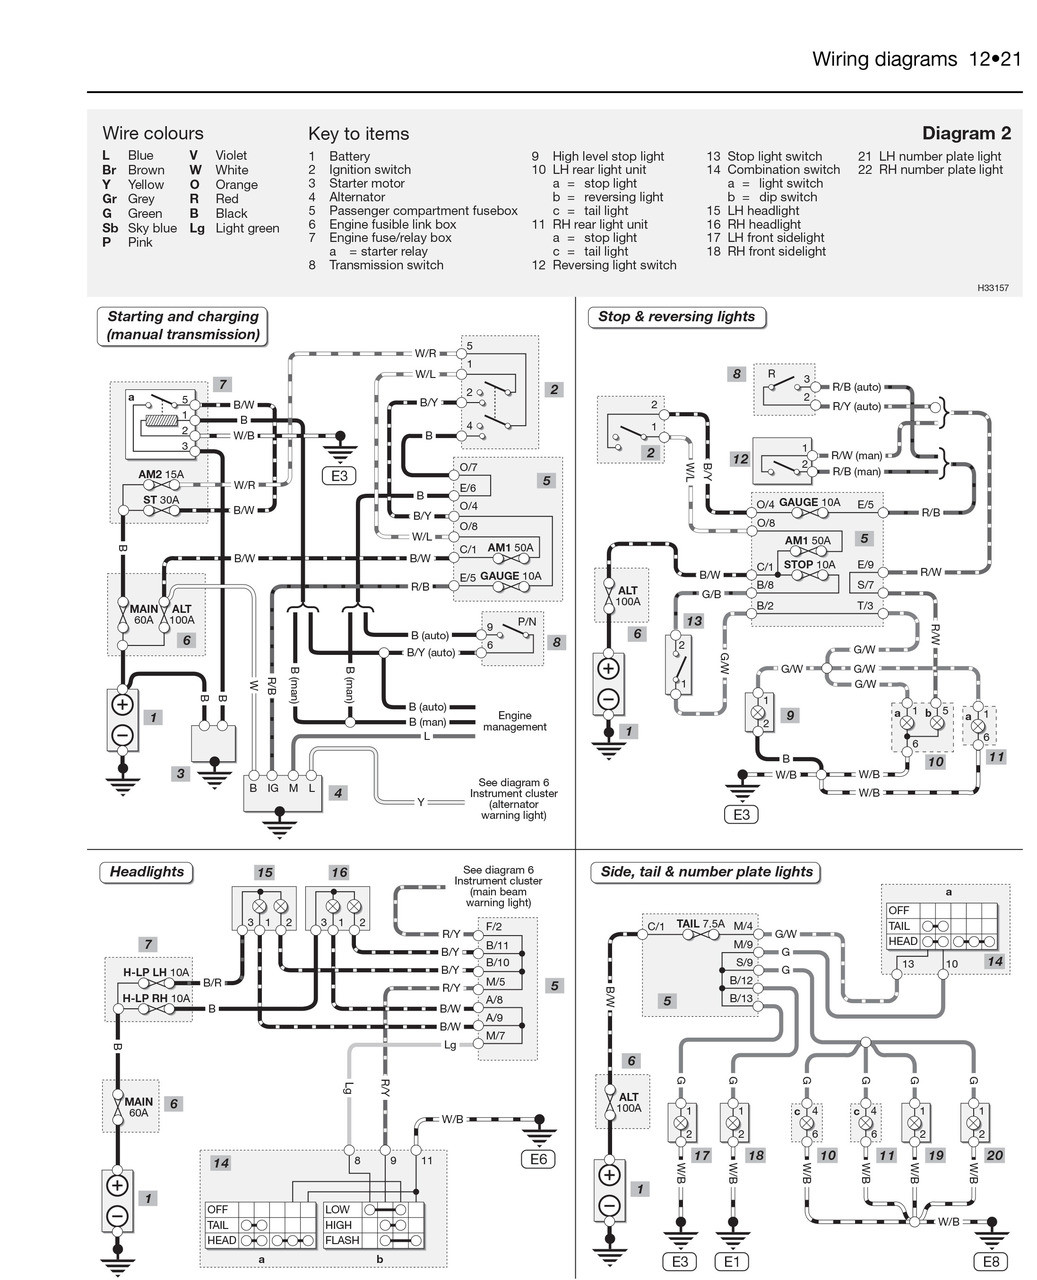 toyota yaris schematic - aspects of wiring and circuits wiring diagram toyota yaris 2008 toyota yaris 2007 fuse box manual shadowqueen.de